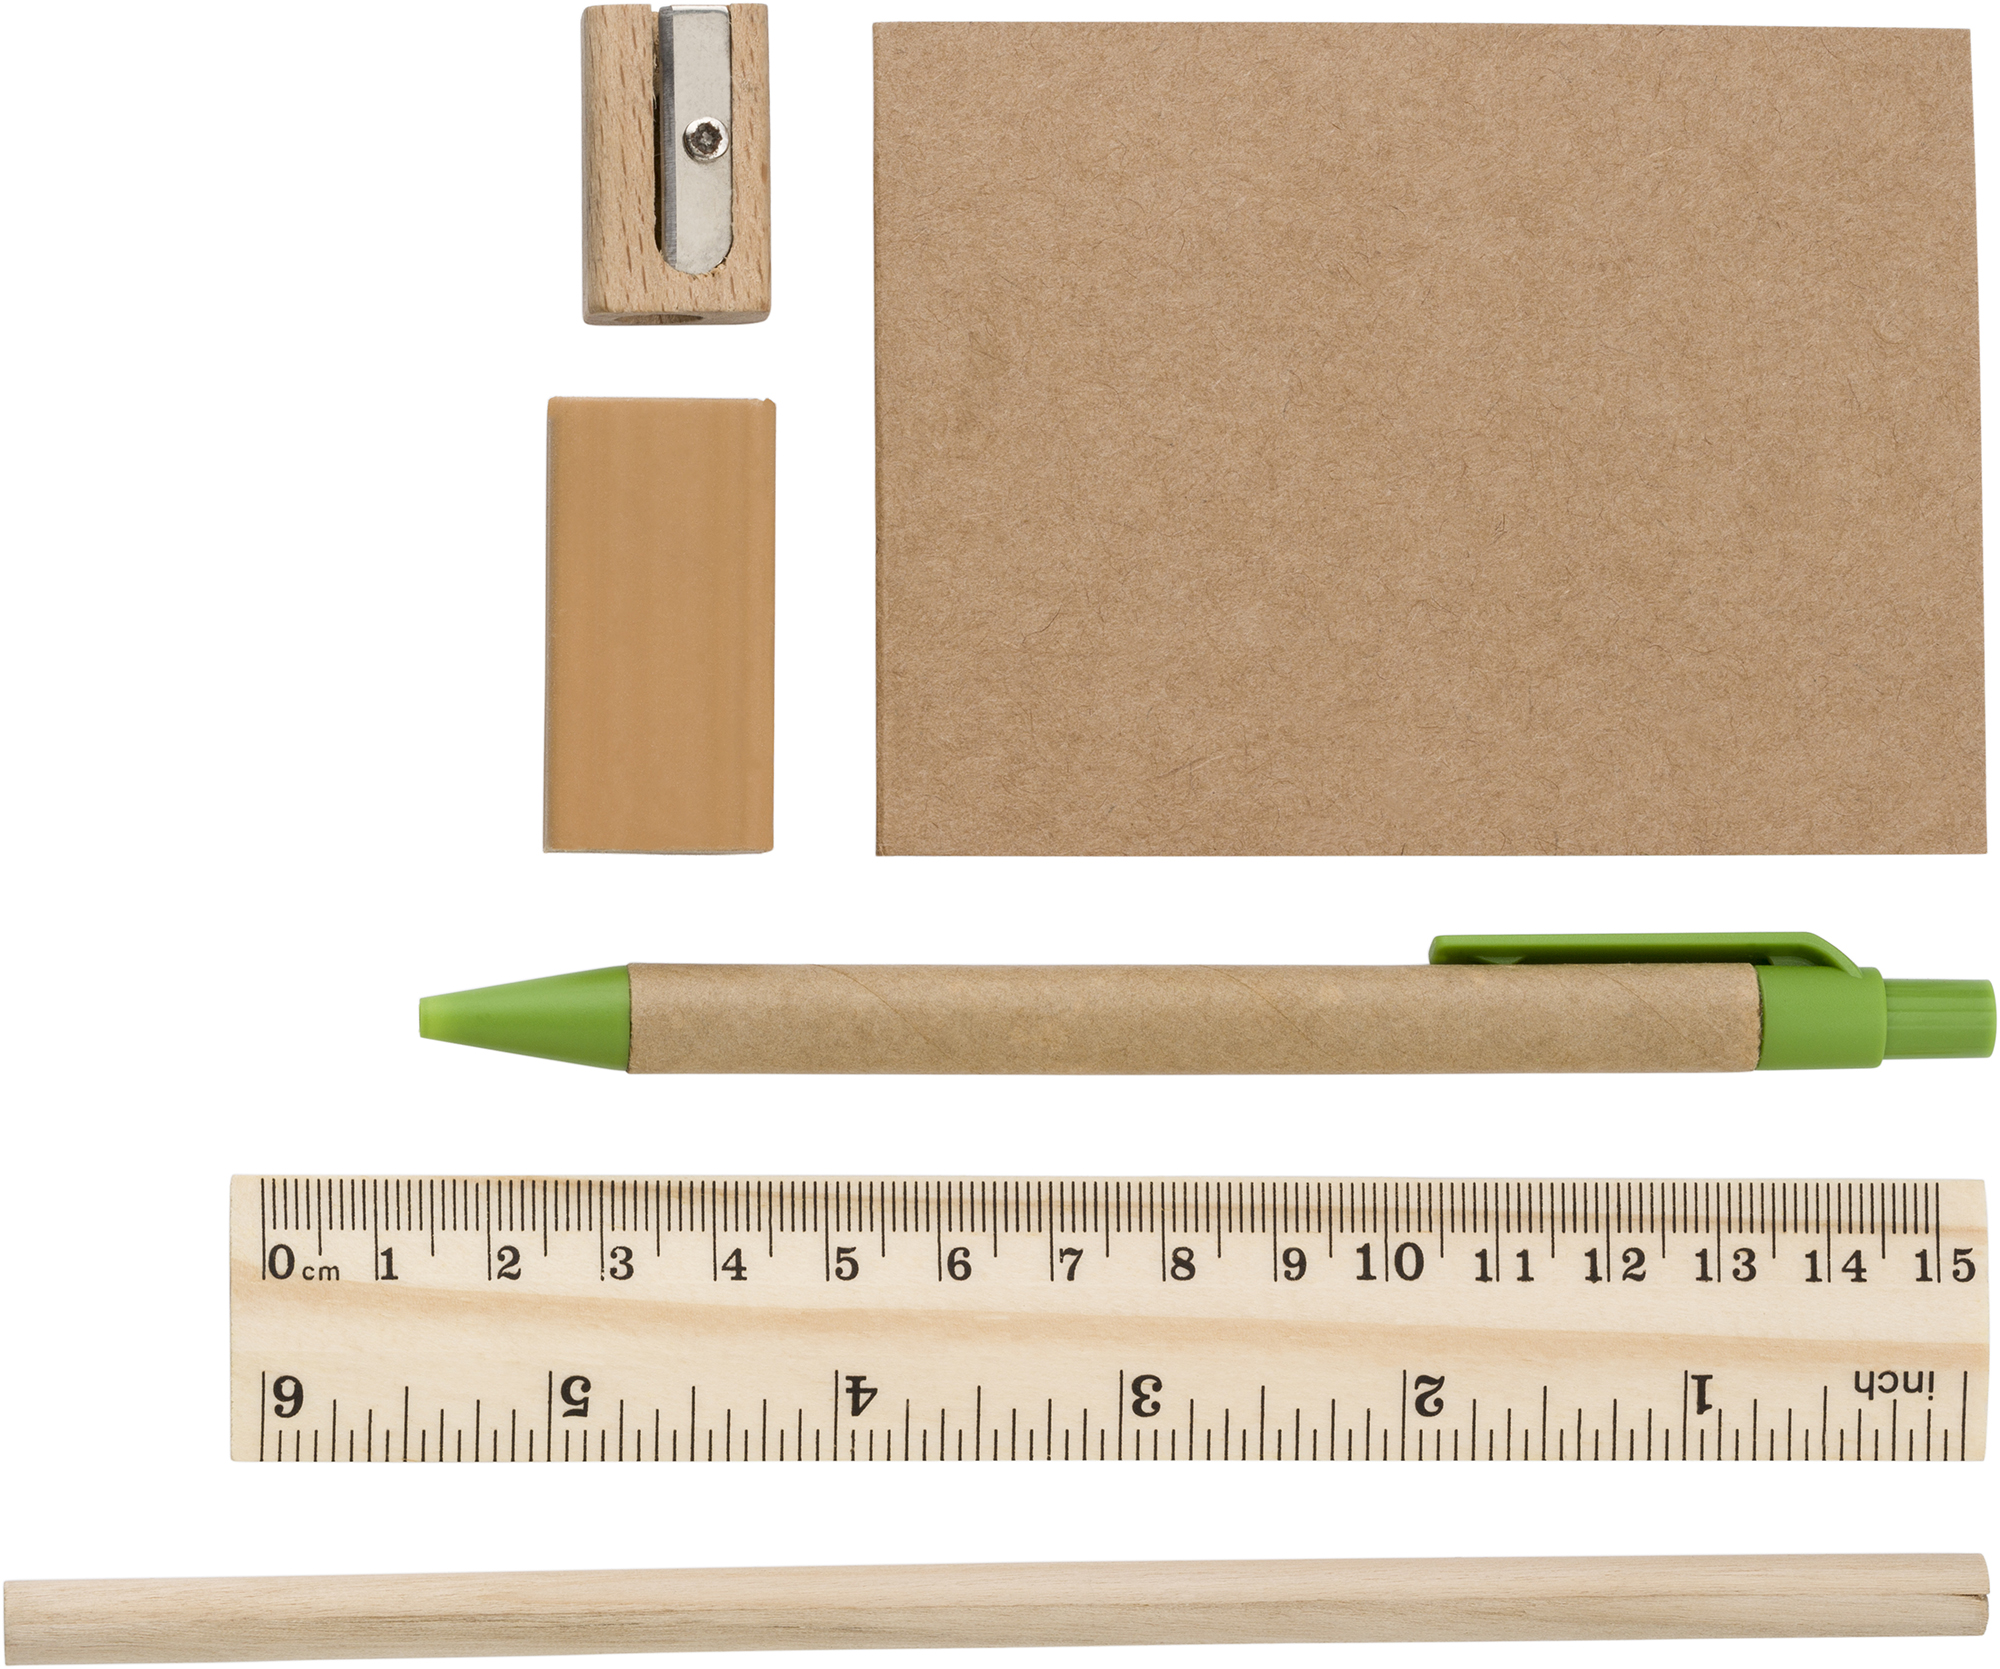 Branded ECO Non-woven pencil case with contents.